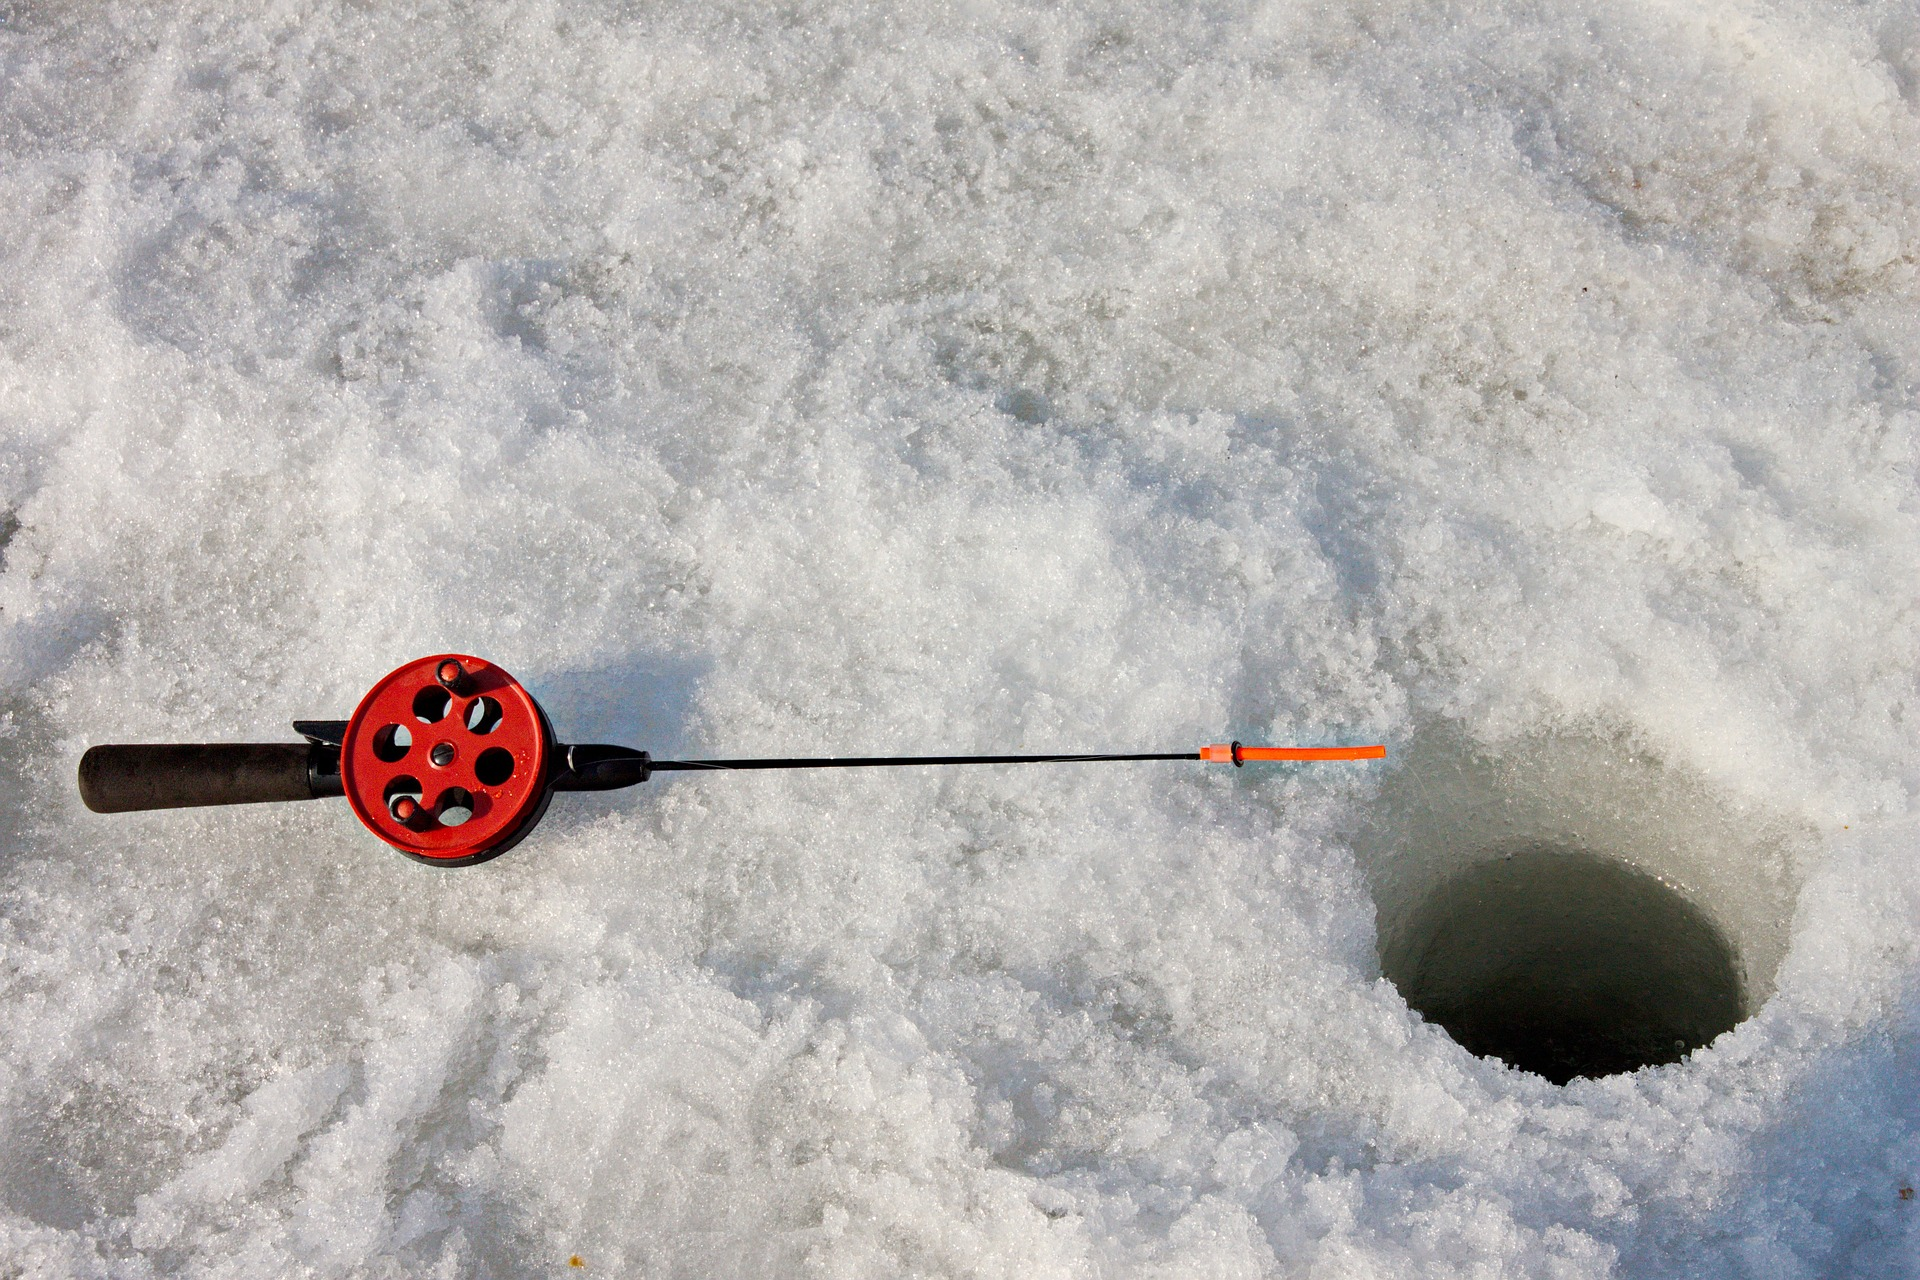 Ice Fishing Derby and Fish Fry return to Beaverton this February